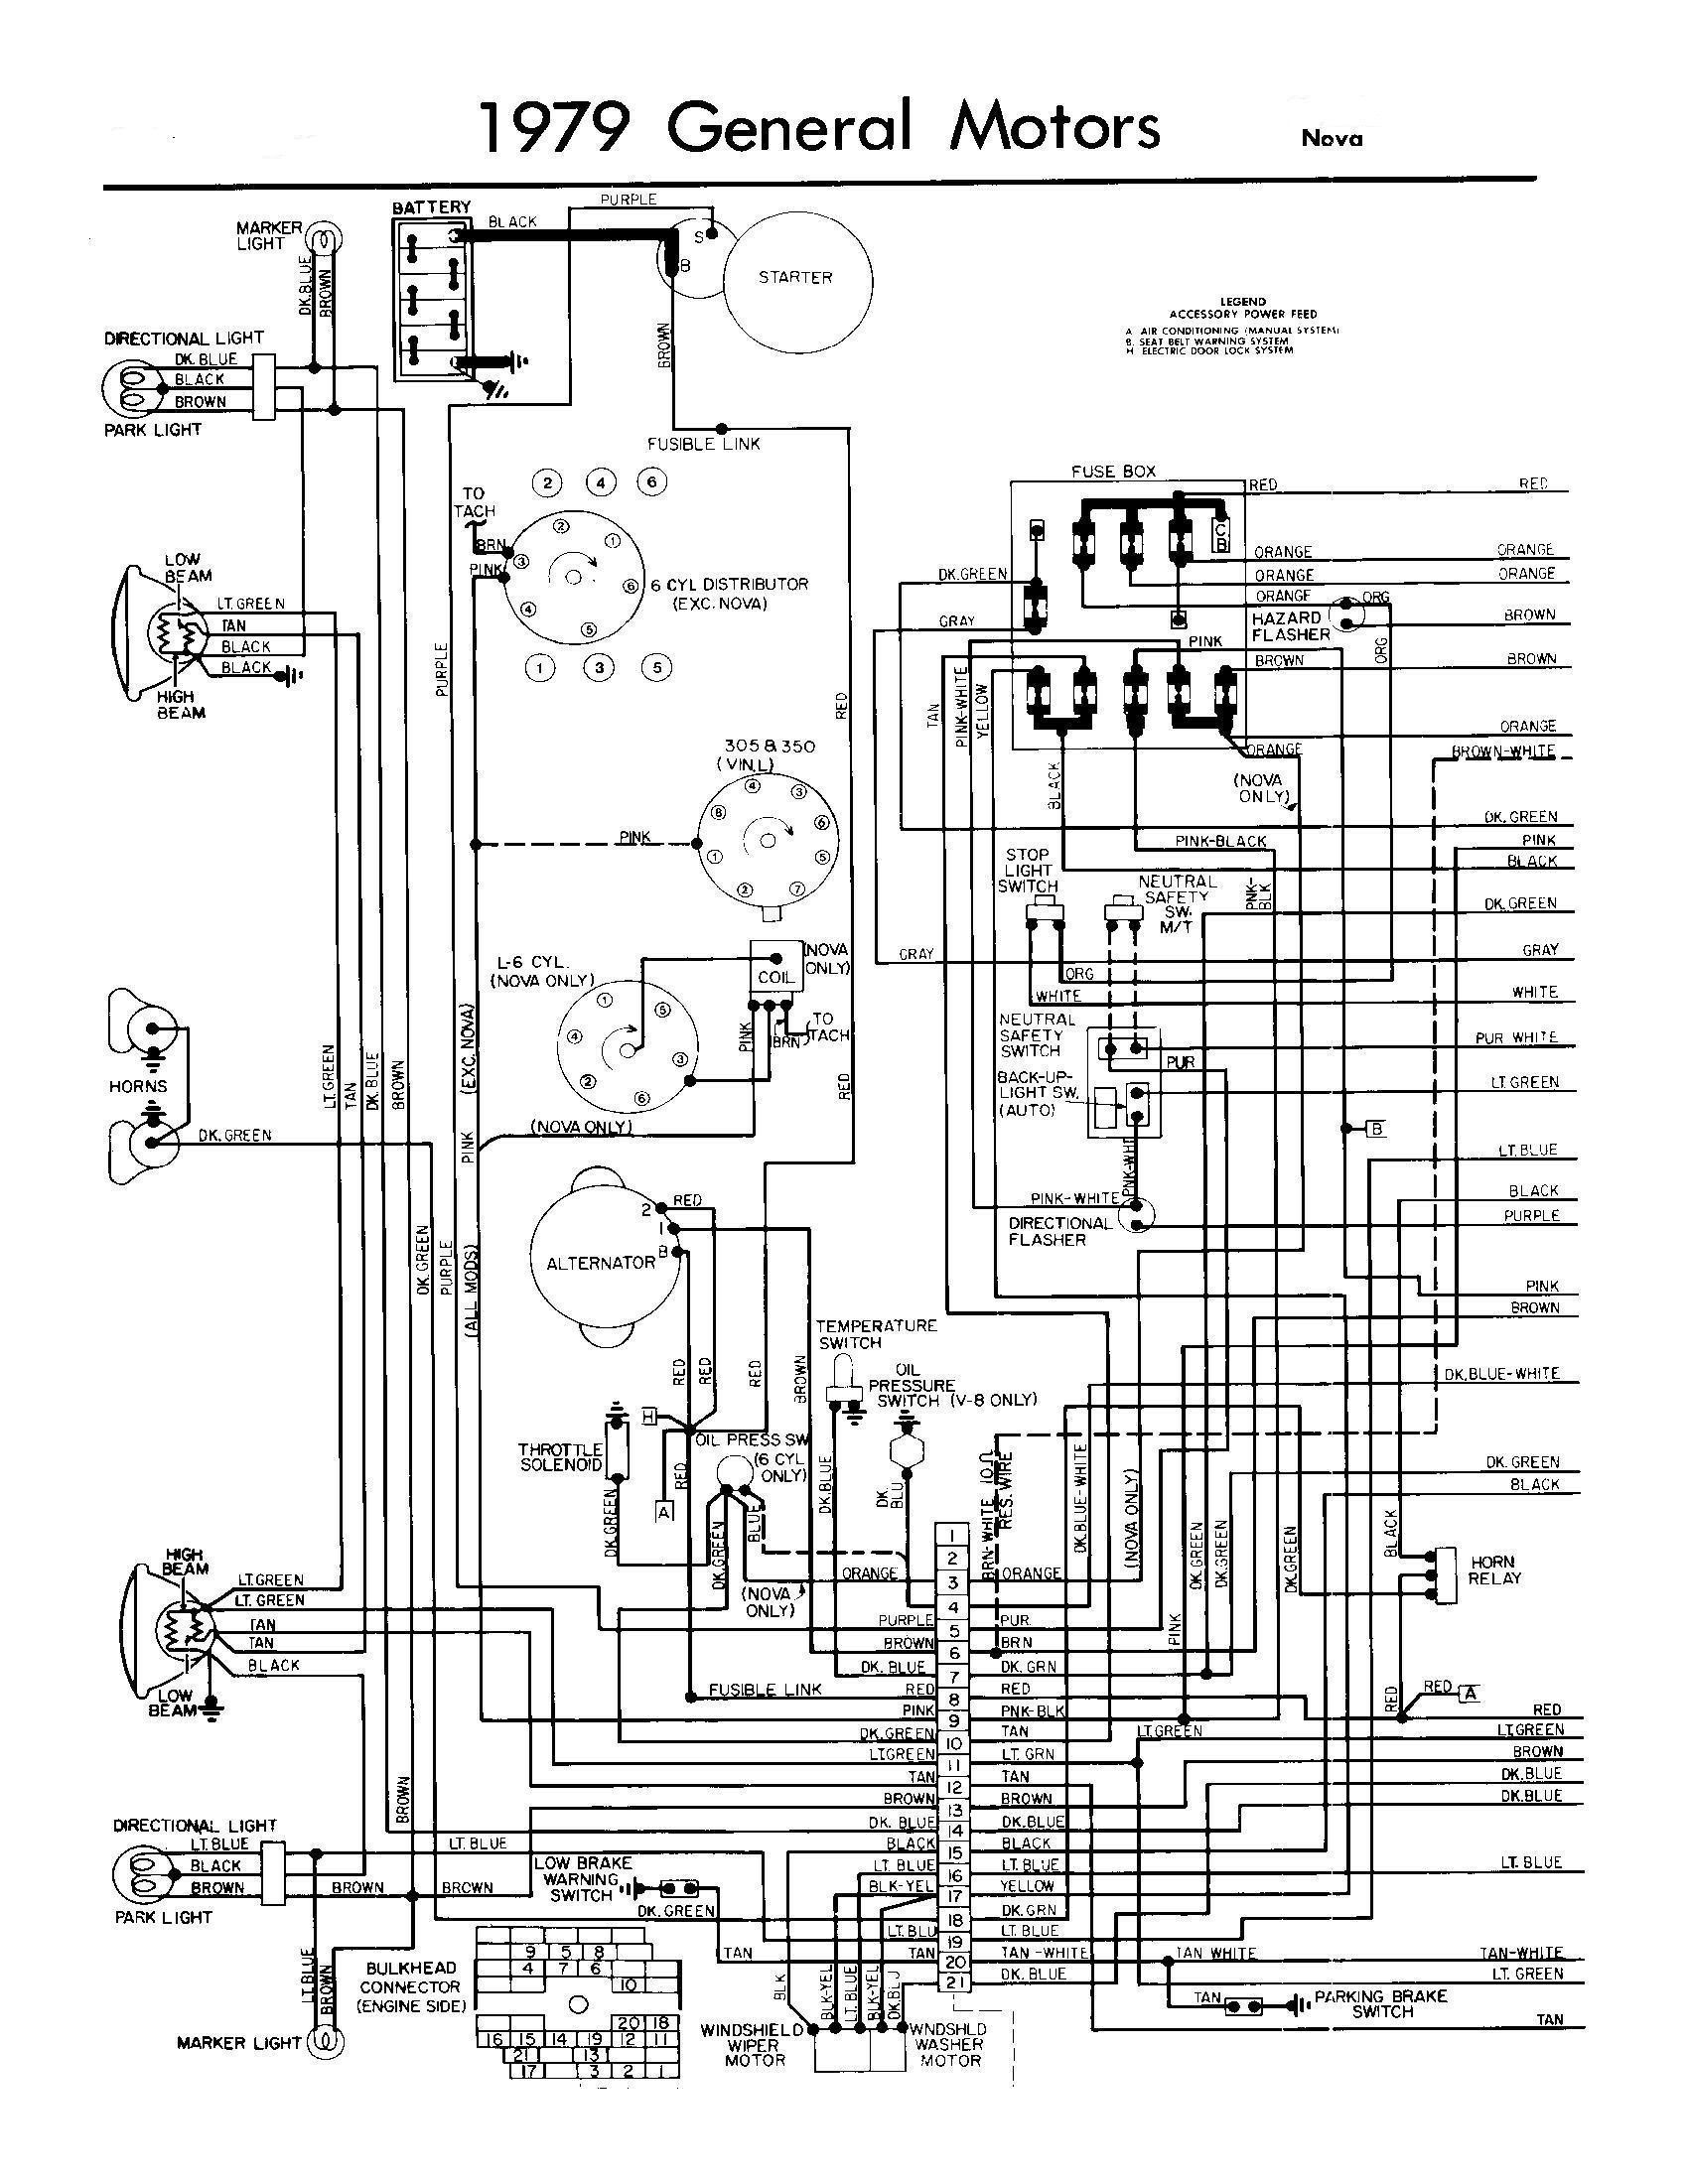 Eclipse Vacuum Diagram Schematic on 258 engine diagram, low voltage lighting wiring diagram, s10 vacuum line diagram, 1978 trans am vacuum diagram, vacuum packing, vacuum motor diagram, vacuum switch diagram, vacuum circuit breaker, vacuum pump, vacuum assembly diagram, vacuum installation diagram, vacuum system diagram, vacuum repair diagram, vacuum relay diagram, pressure tank plumbing diagram, vacuum routing diagram, pump diagram, vacuum sensor diagram, 1983 cj7 vacuum line diagram, vacuum control diagram,